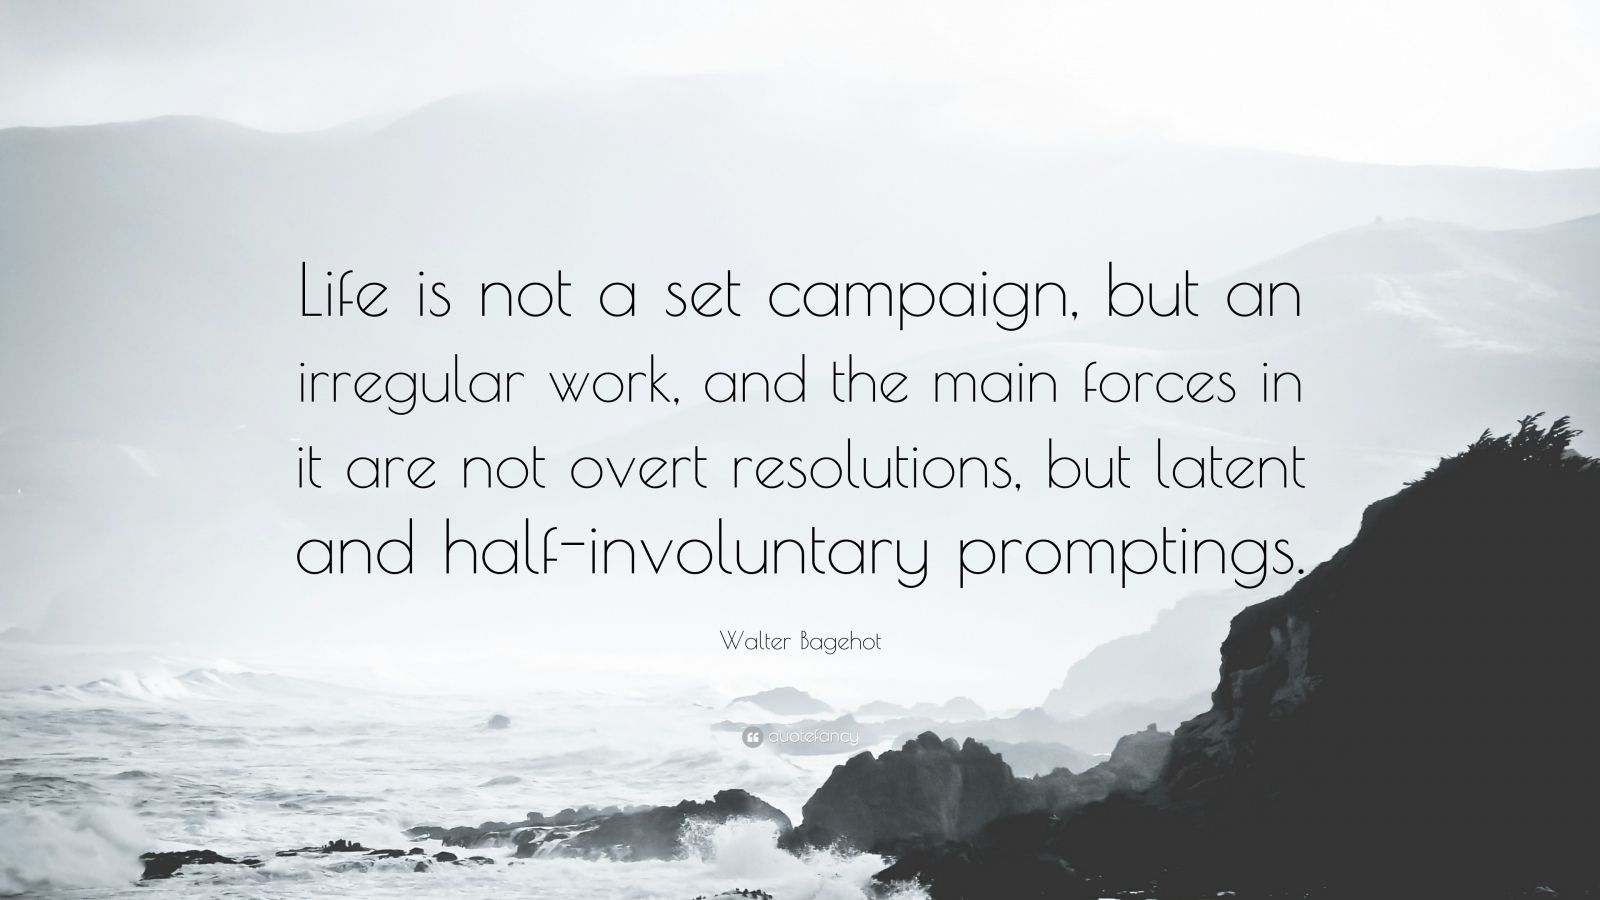 """Walter Bagehot Quote: """"Life is not a set campaign, but an irregular work, and the main forces in it are not overt resolutions, but latent and half-involuntary promptings."""""""